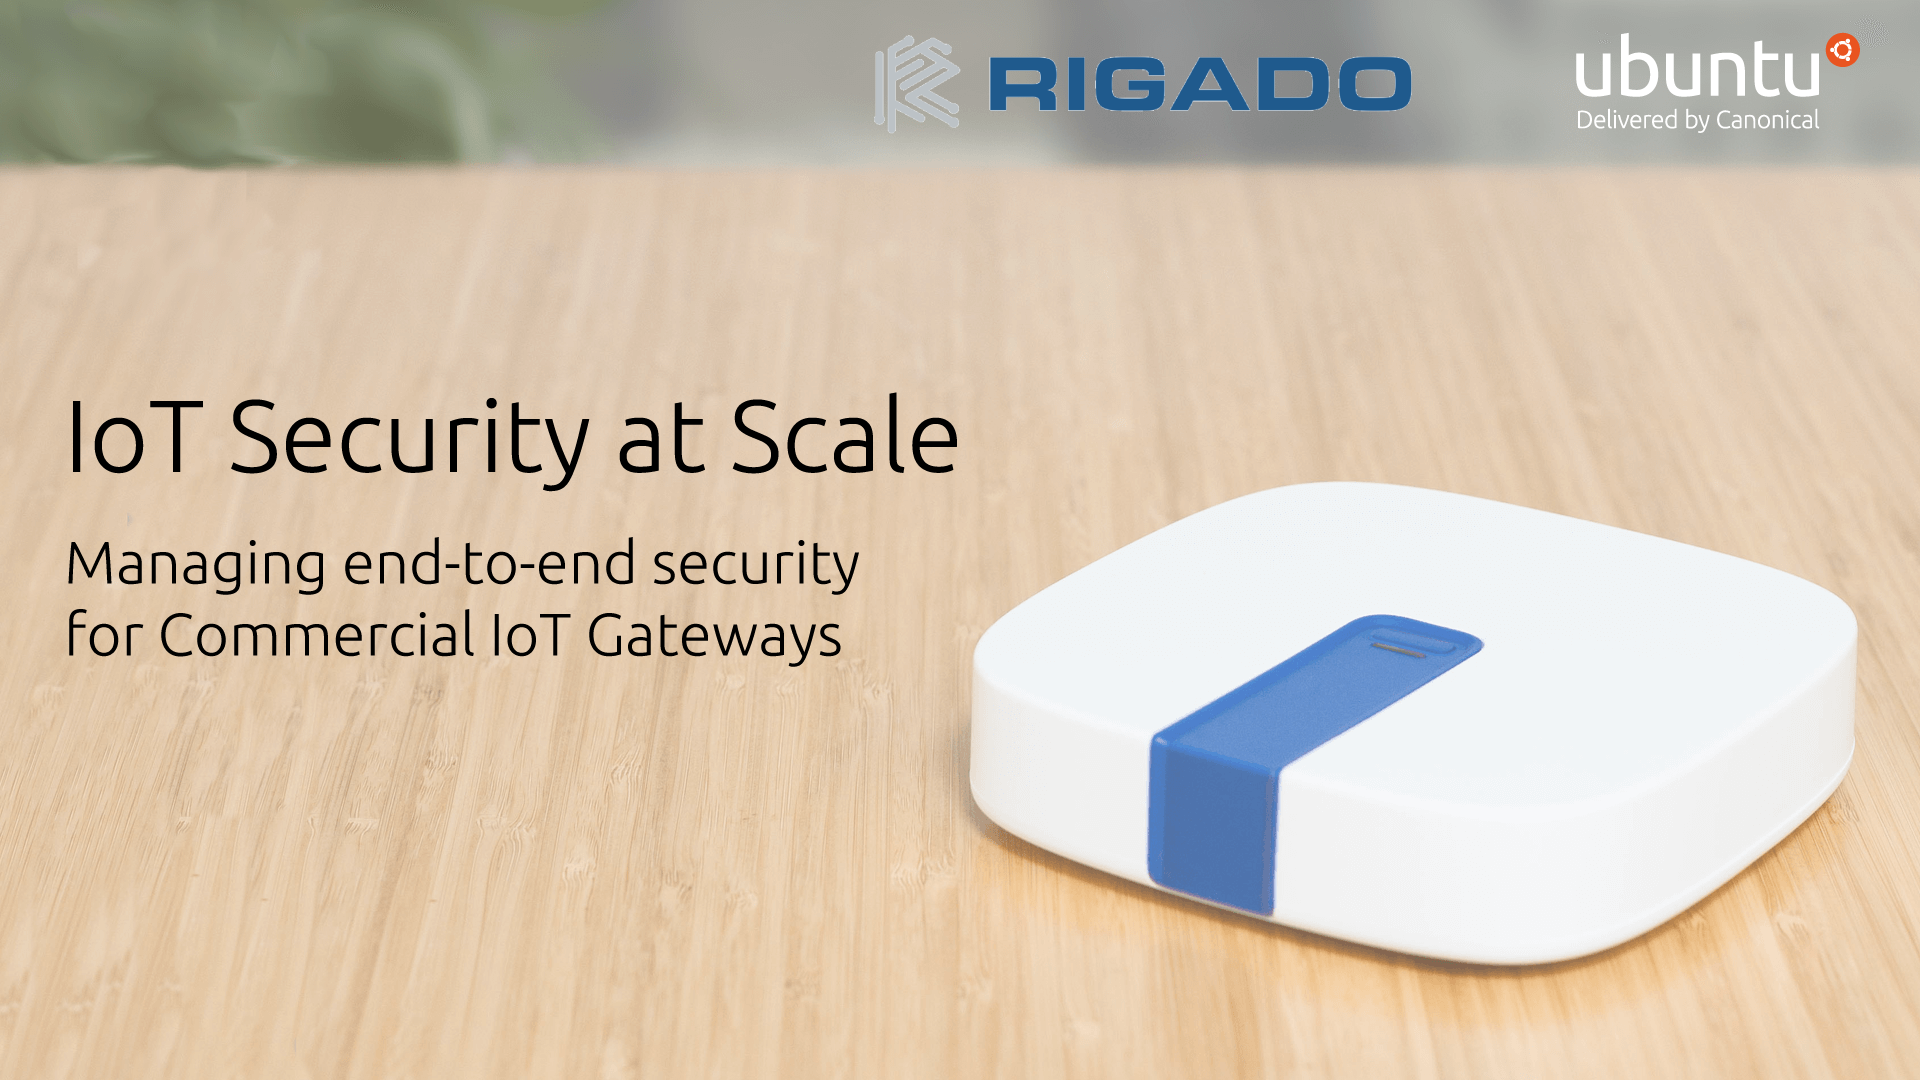 Rigado Webinar on Ubuntu Core and IoT Security